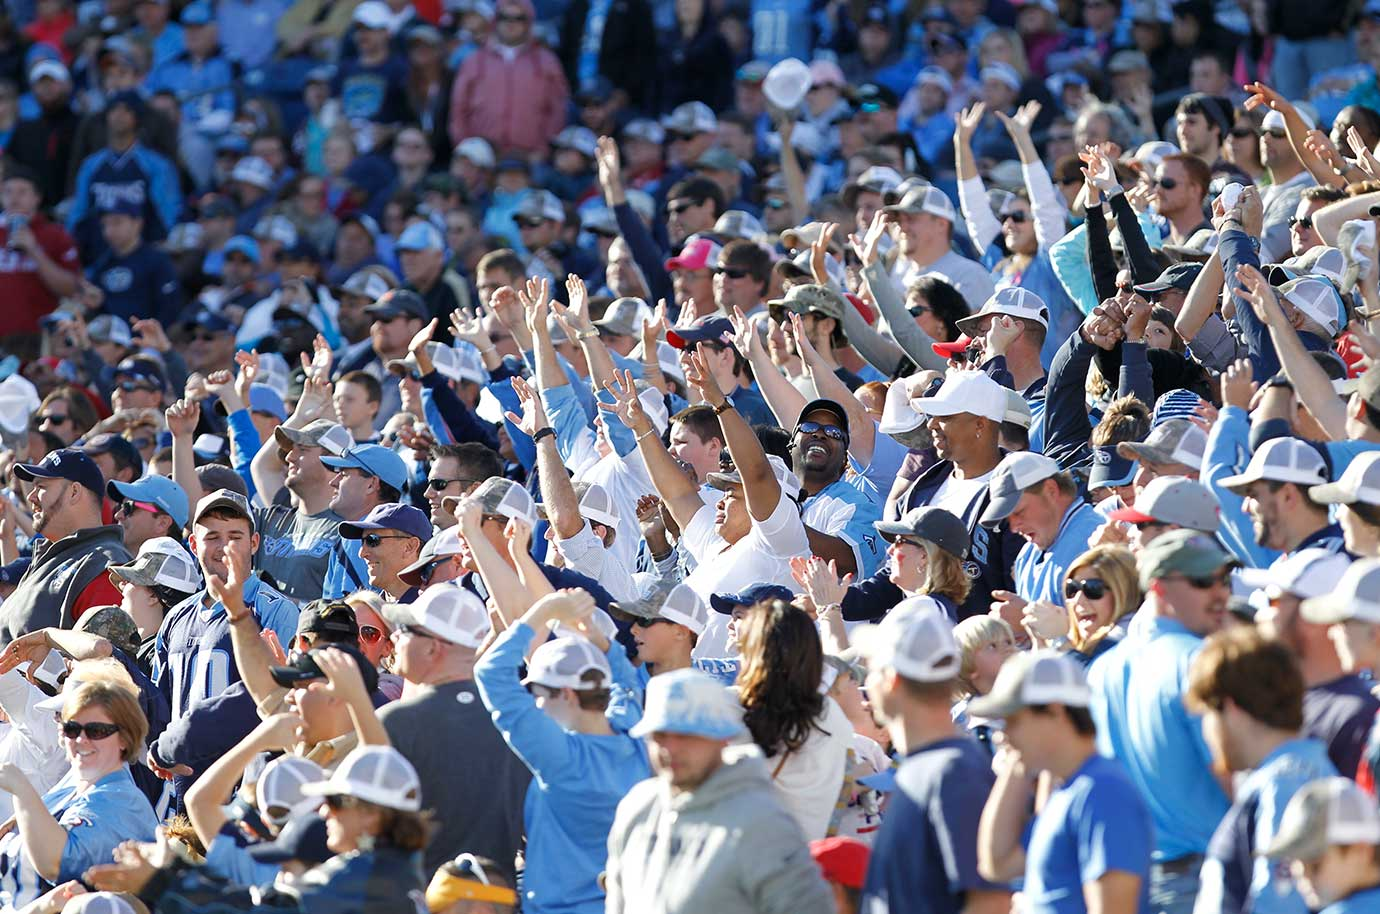 Tennessee Titans fans cheering in the stands